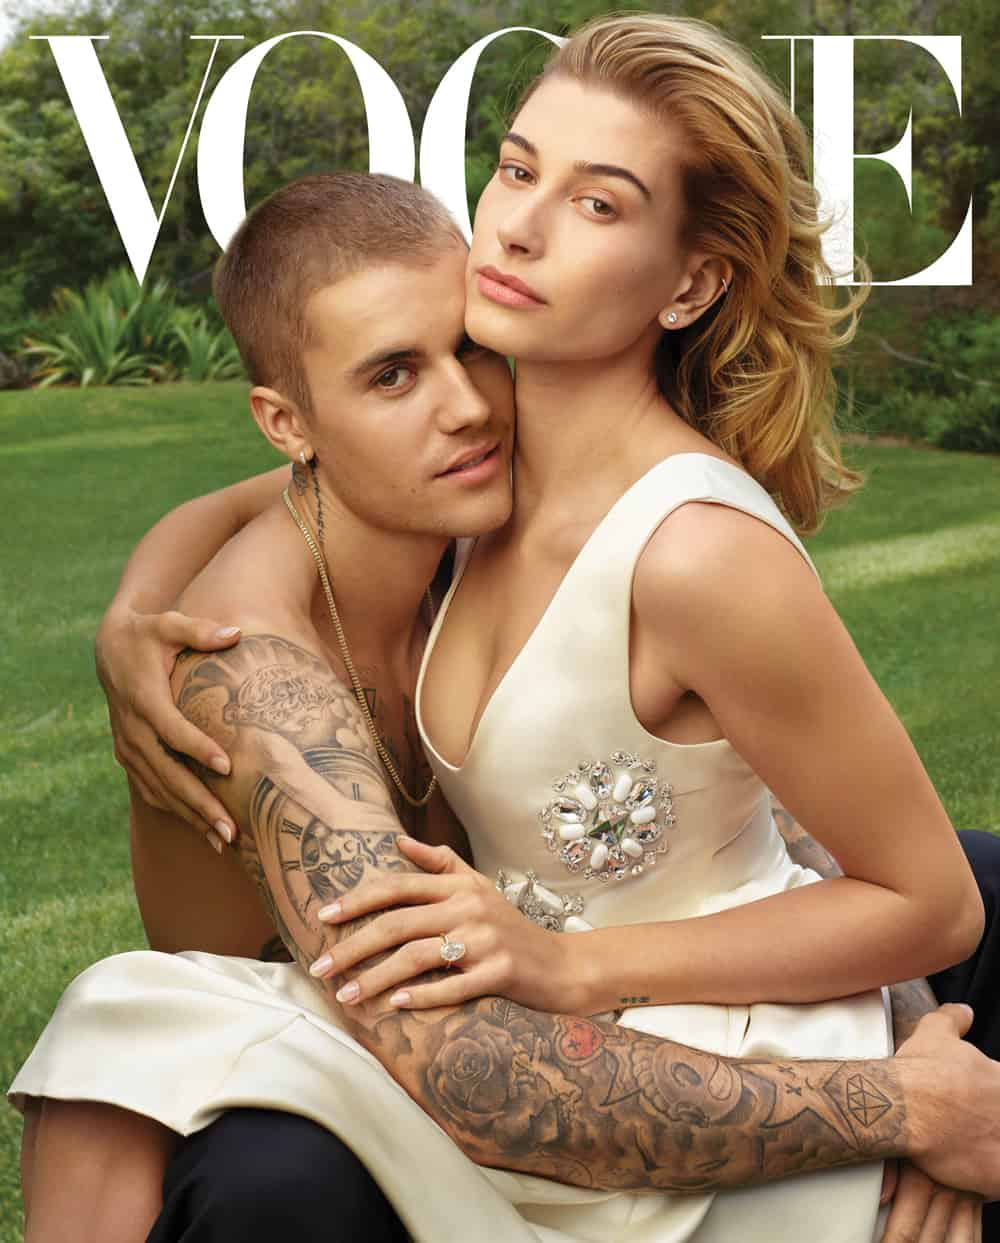 9b60b74b0 Married Life With Hailey and Justin Bieber